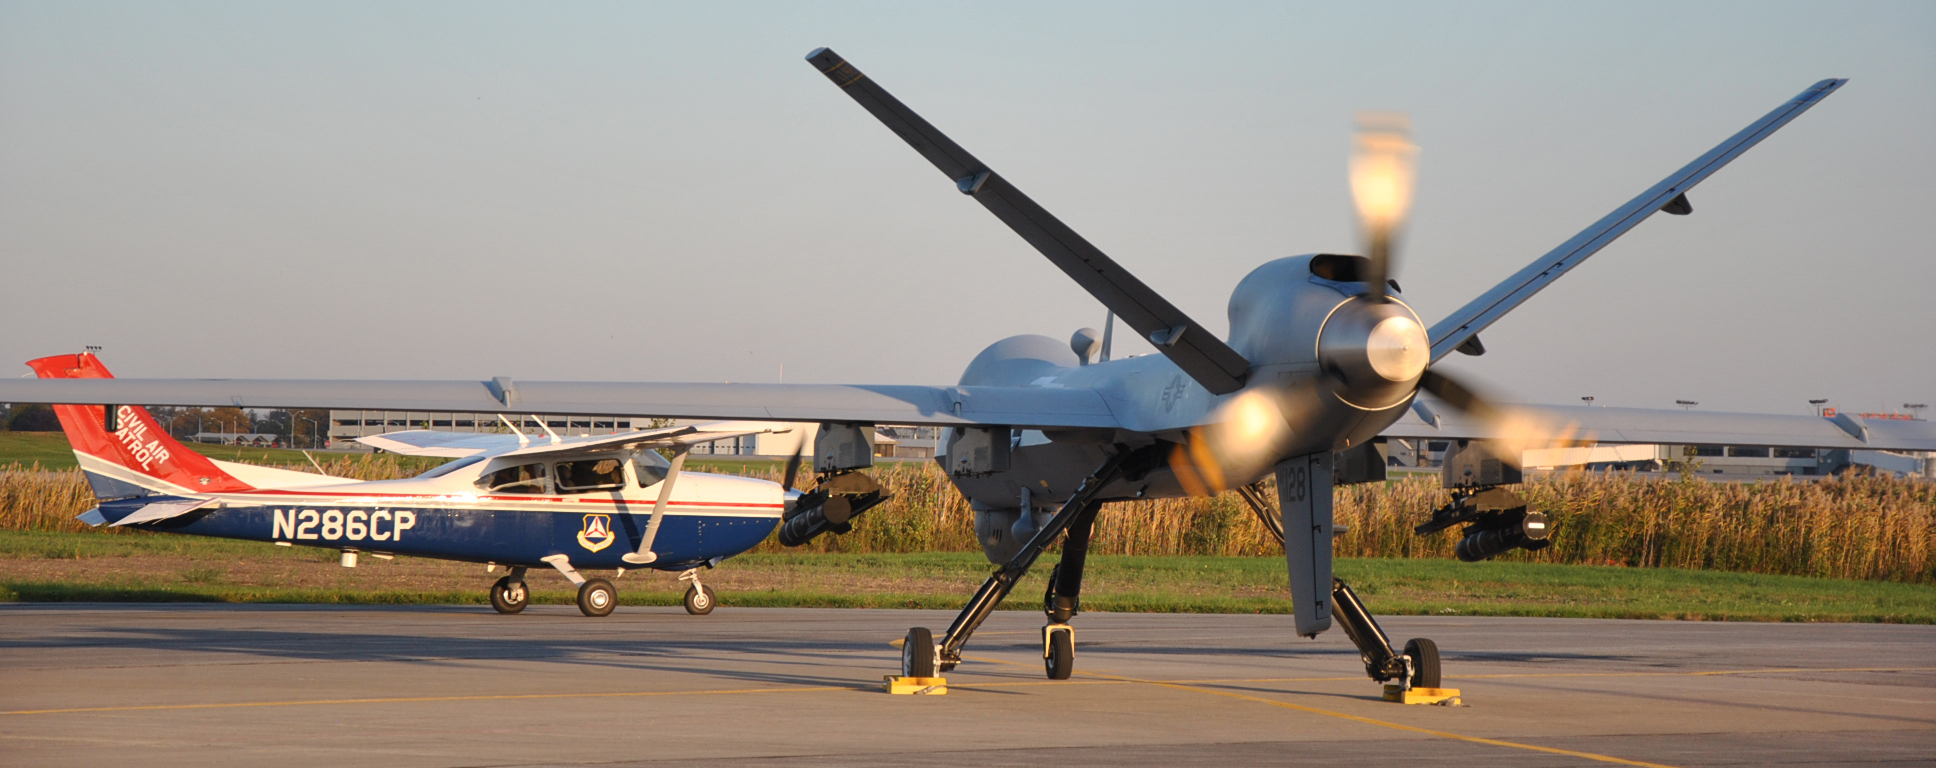 Civil Air Patrol aircraft taxis past USAF Reaper on runway